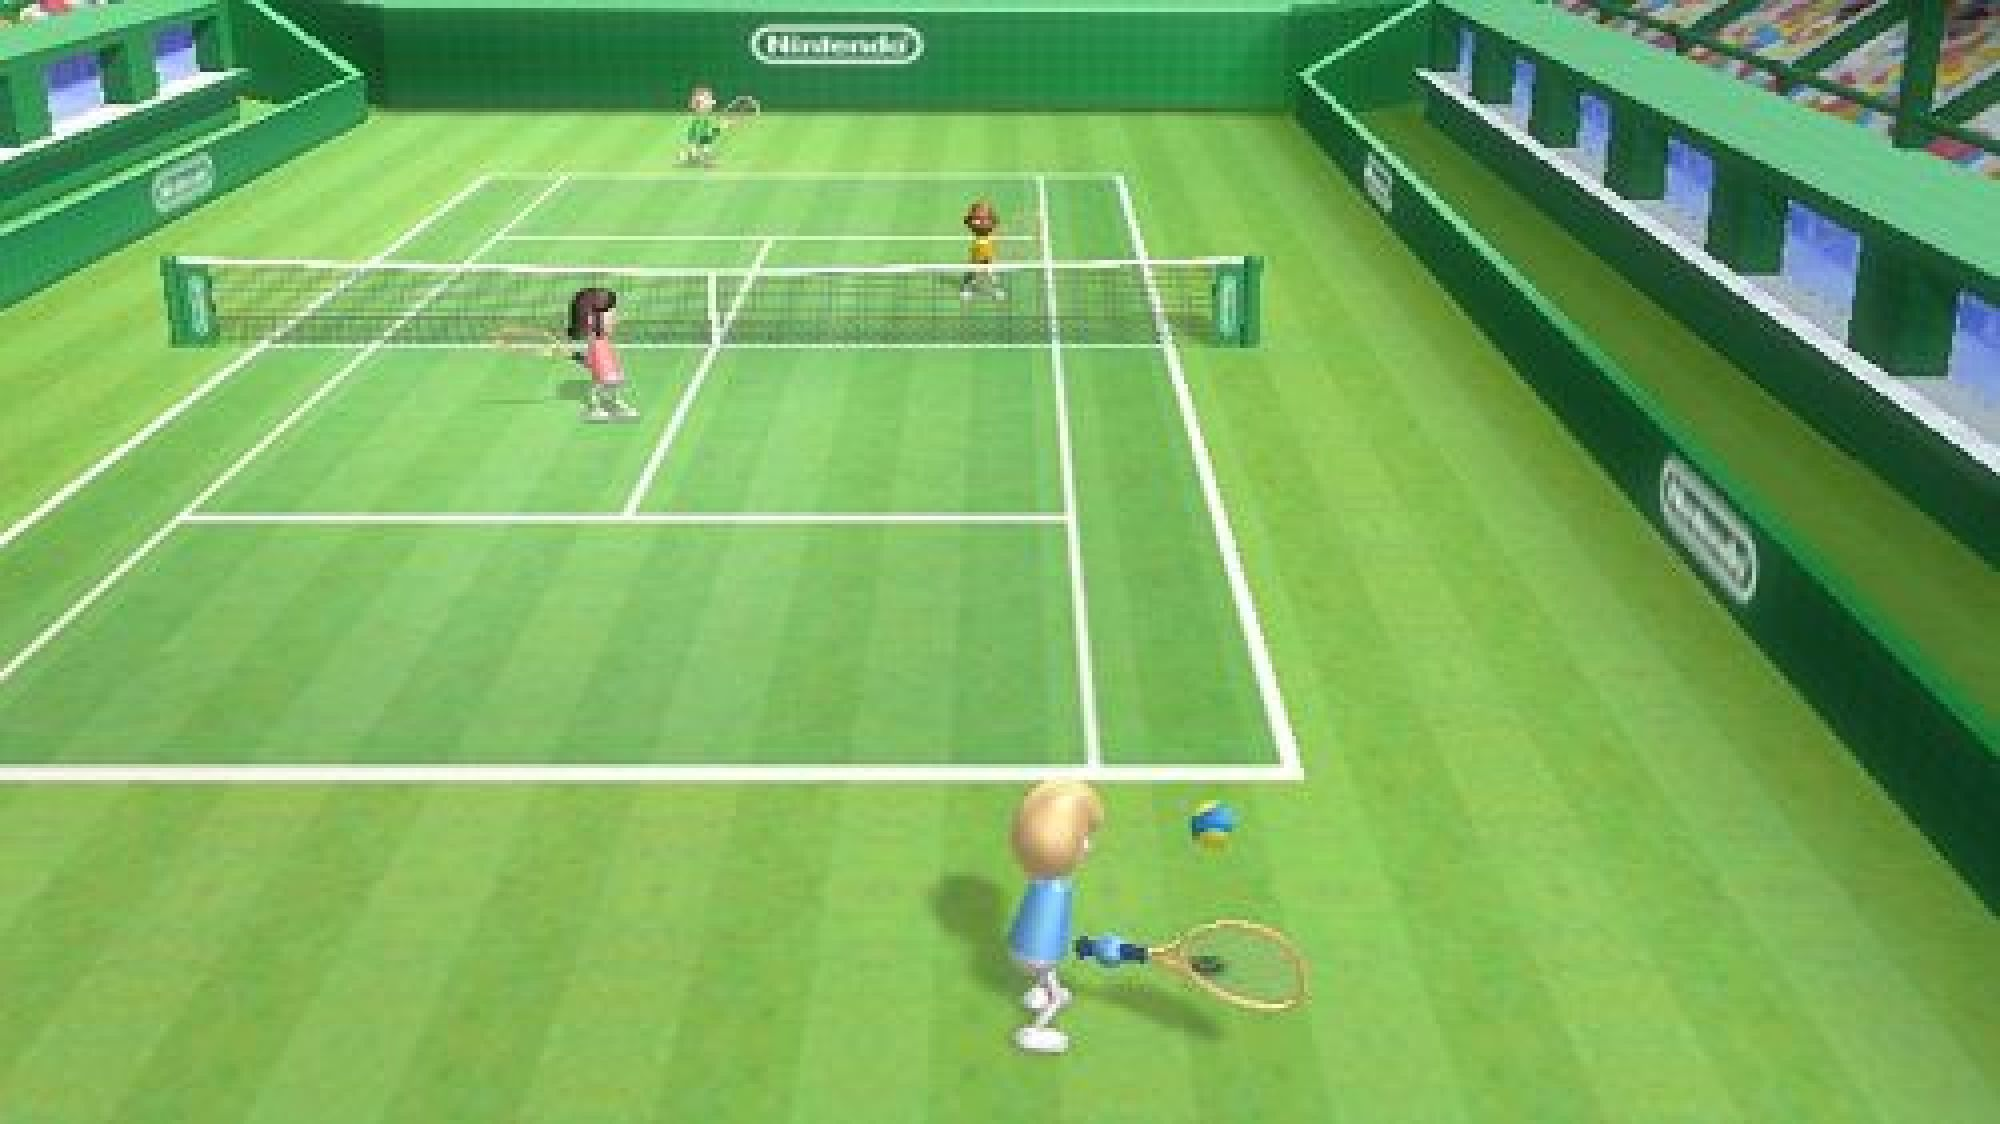 wii sports club tennis games nintendo game classic coming